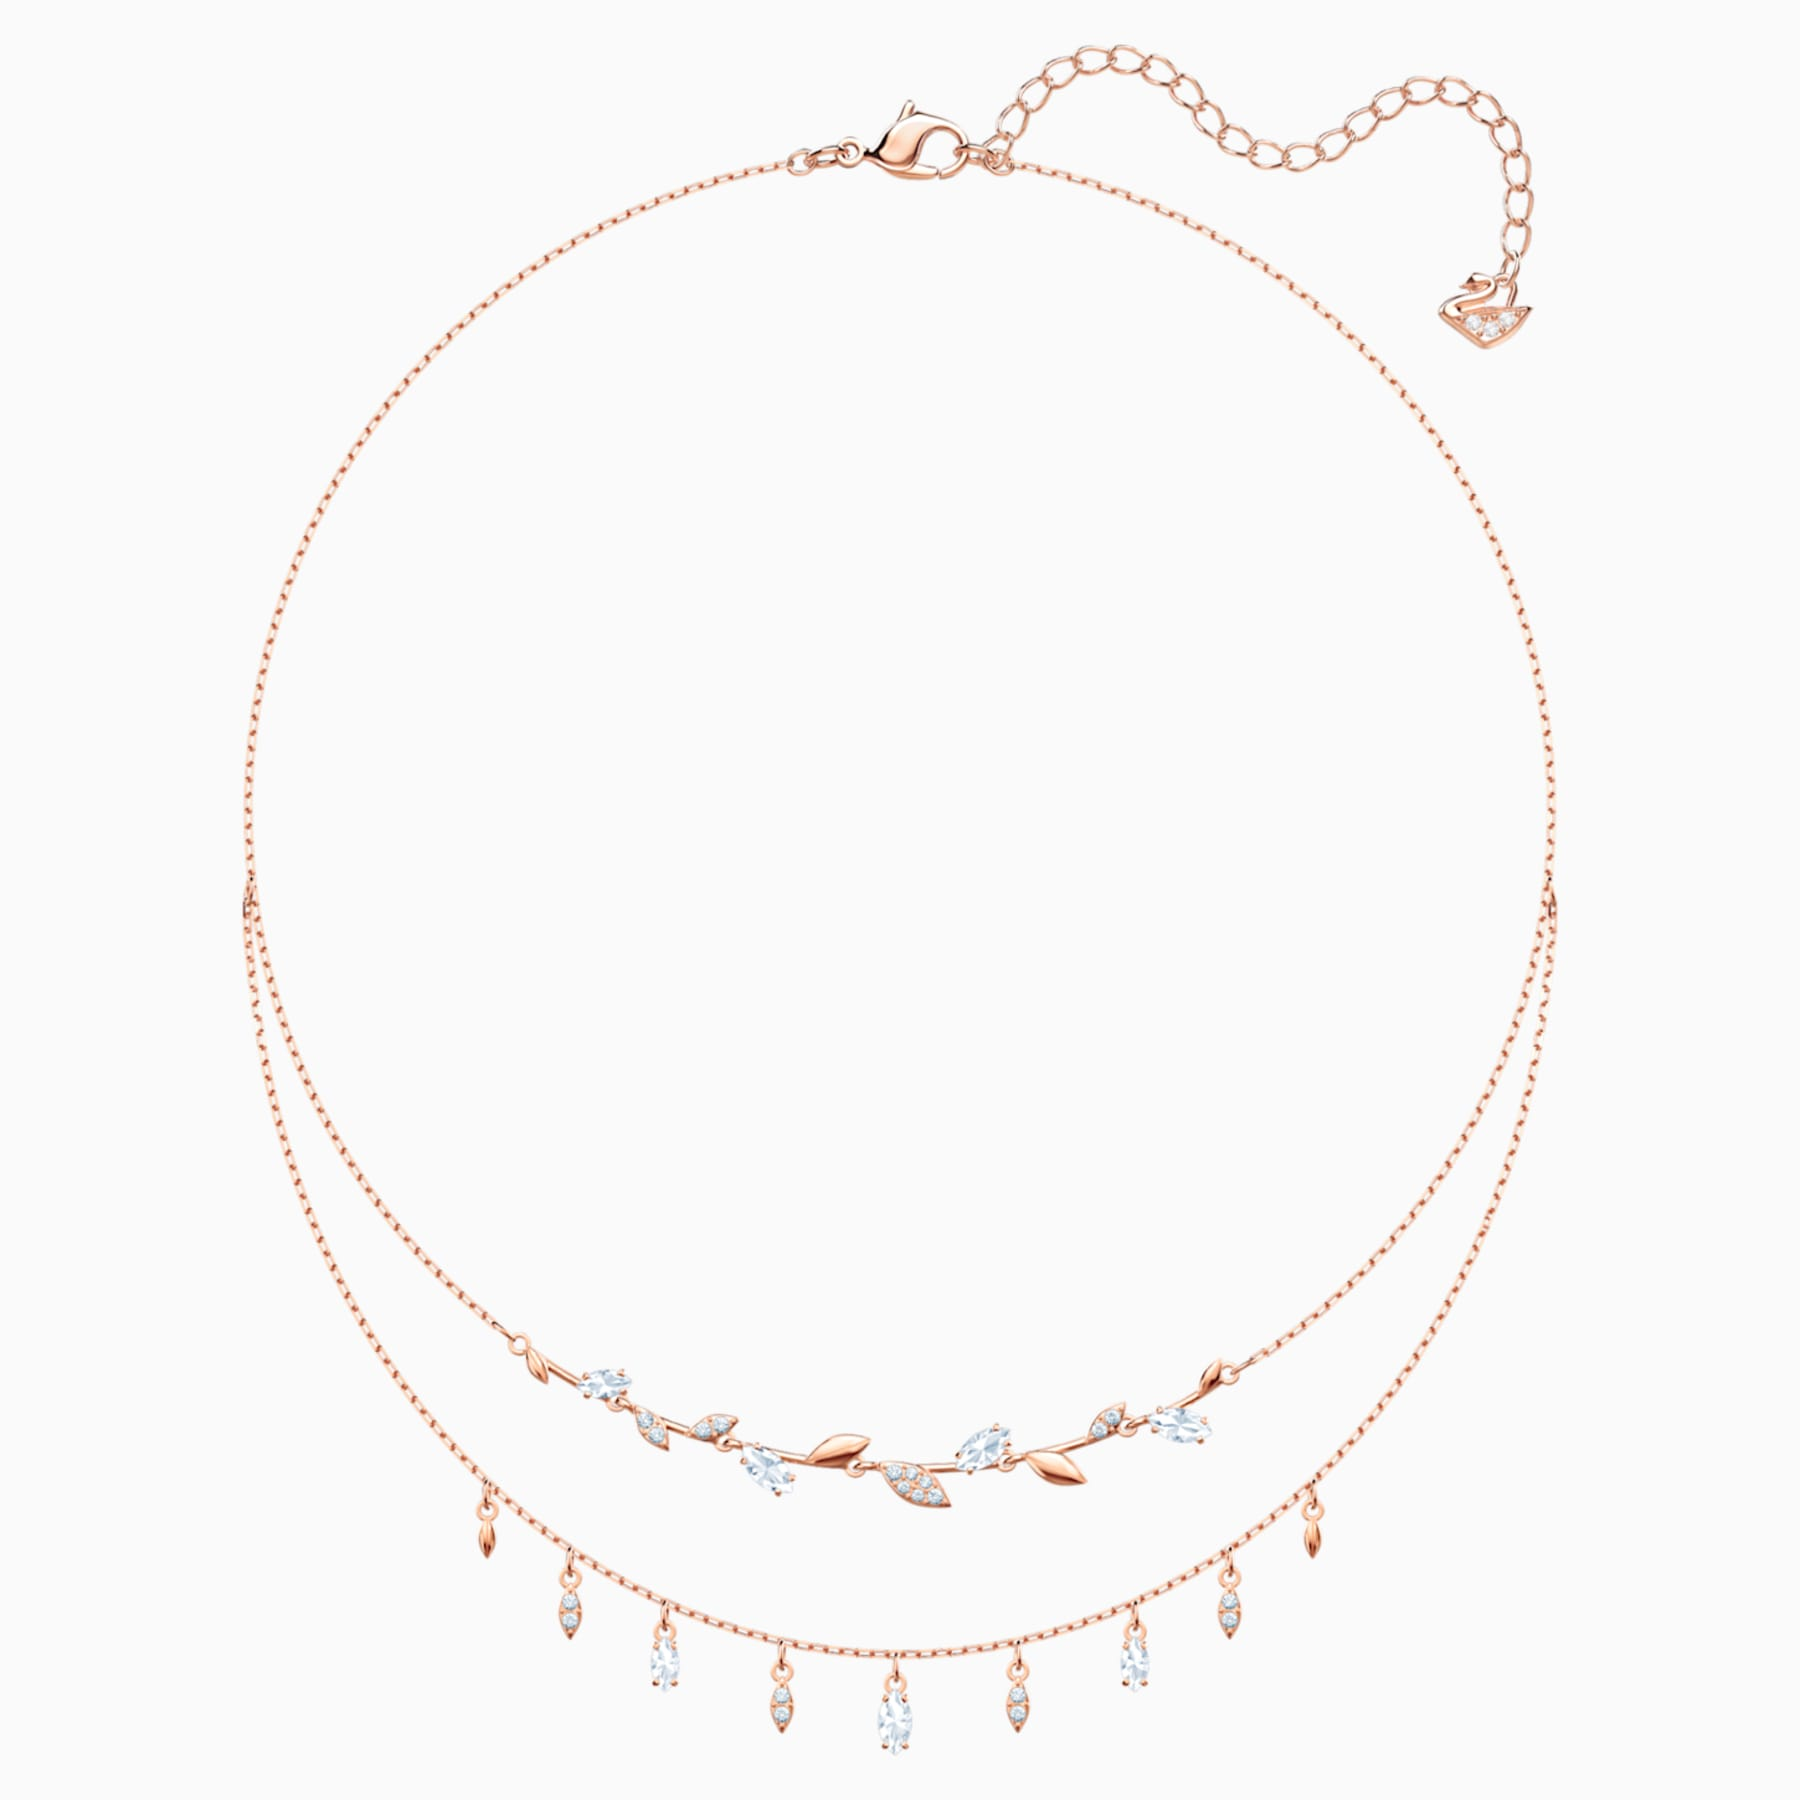 SWAROVSKI MAYFLY NECKLACE, WHITE, ROSE-GOLD TONE PLATED